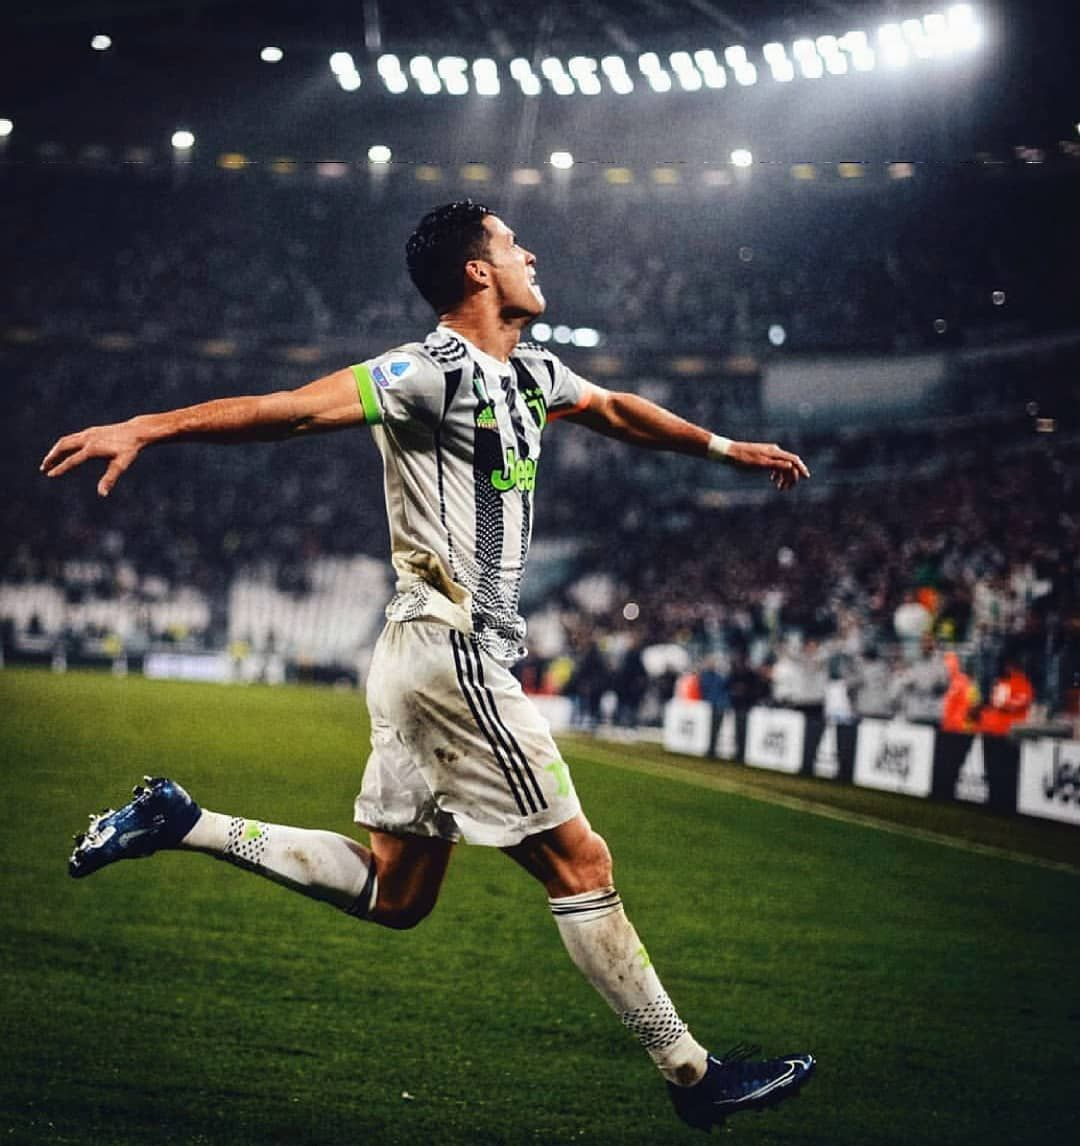 Best Footballe Player Hd Wallpaper Photos For Mobile Football Wallpaper Football Poster Football Images